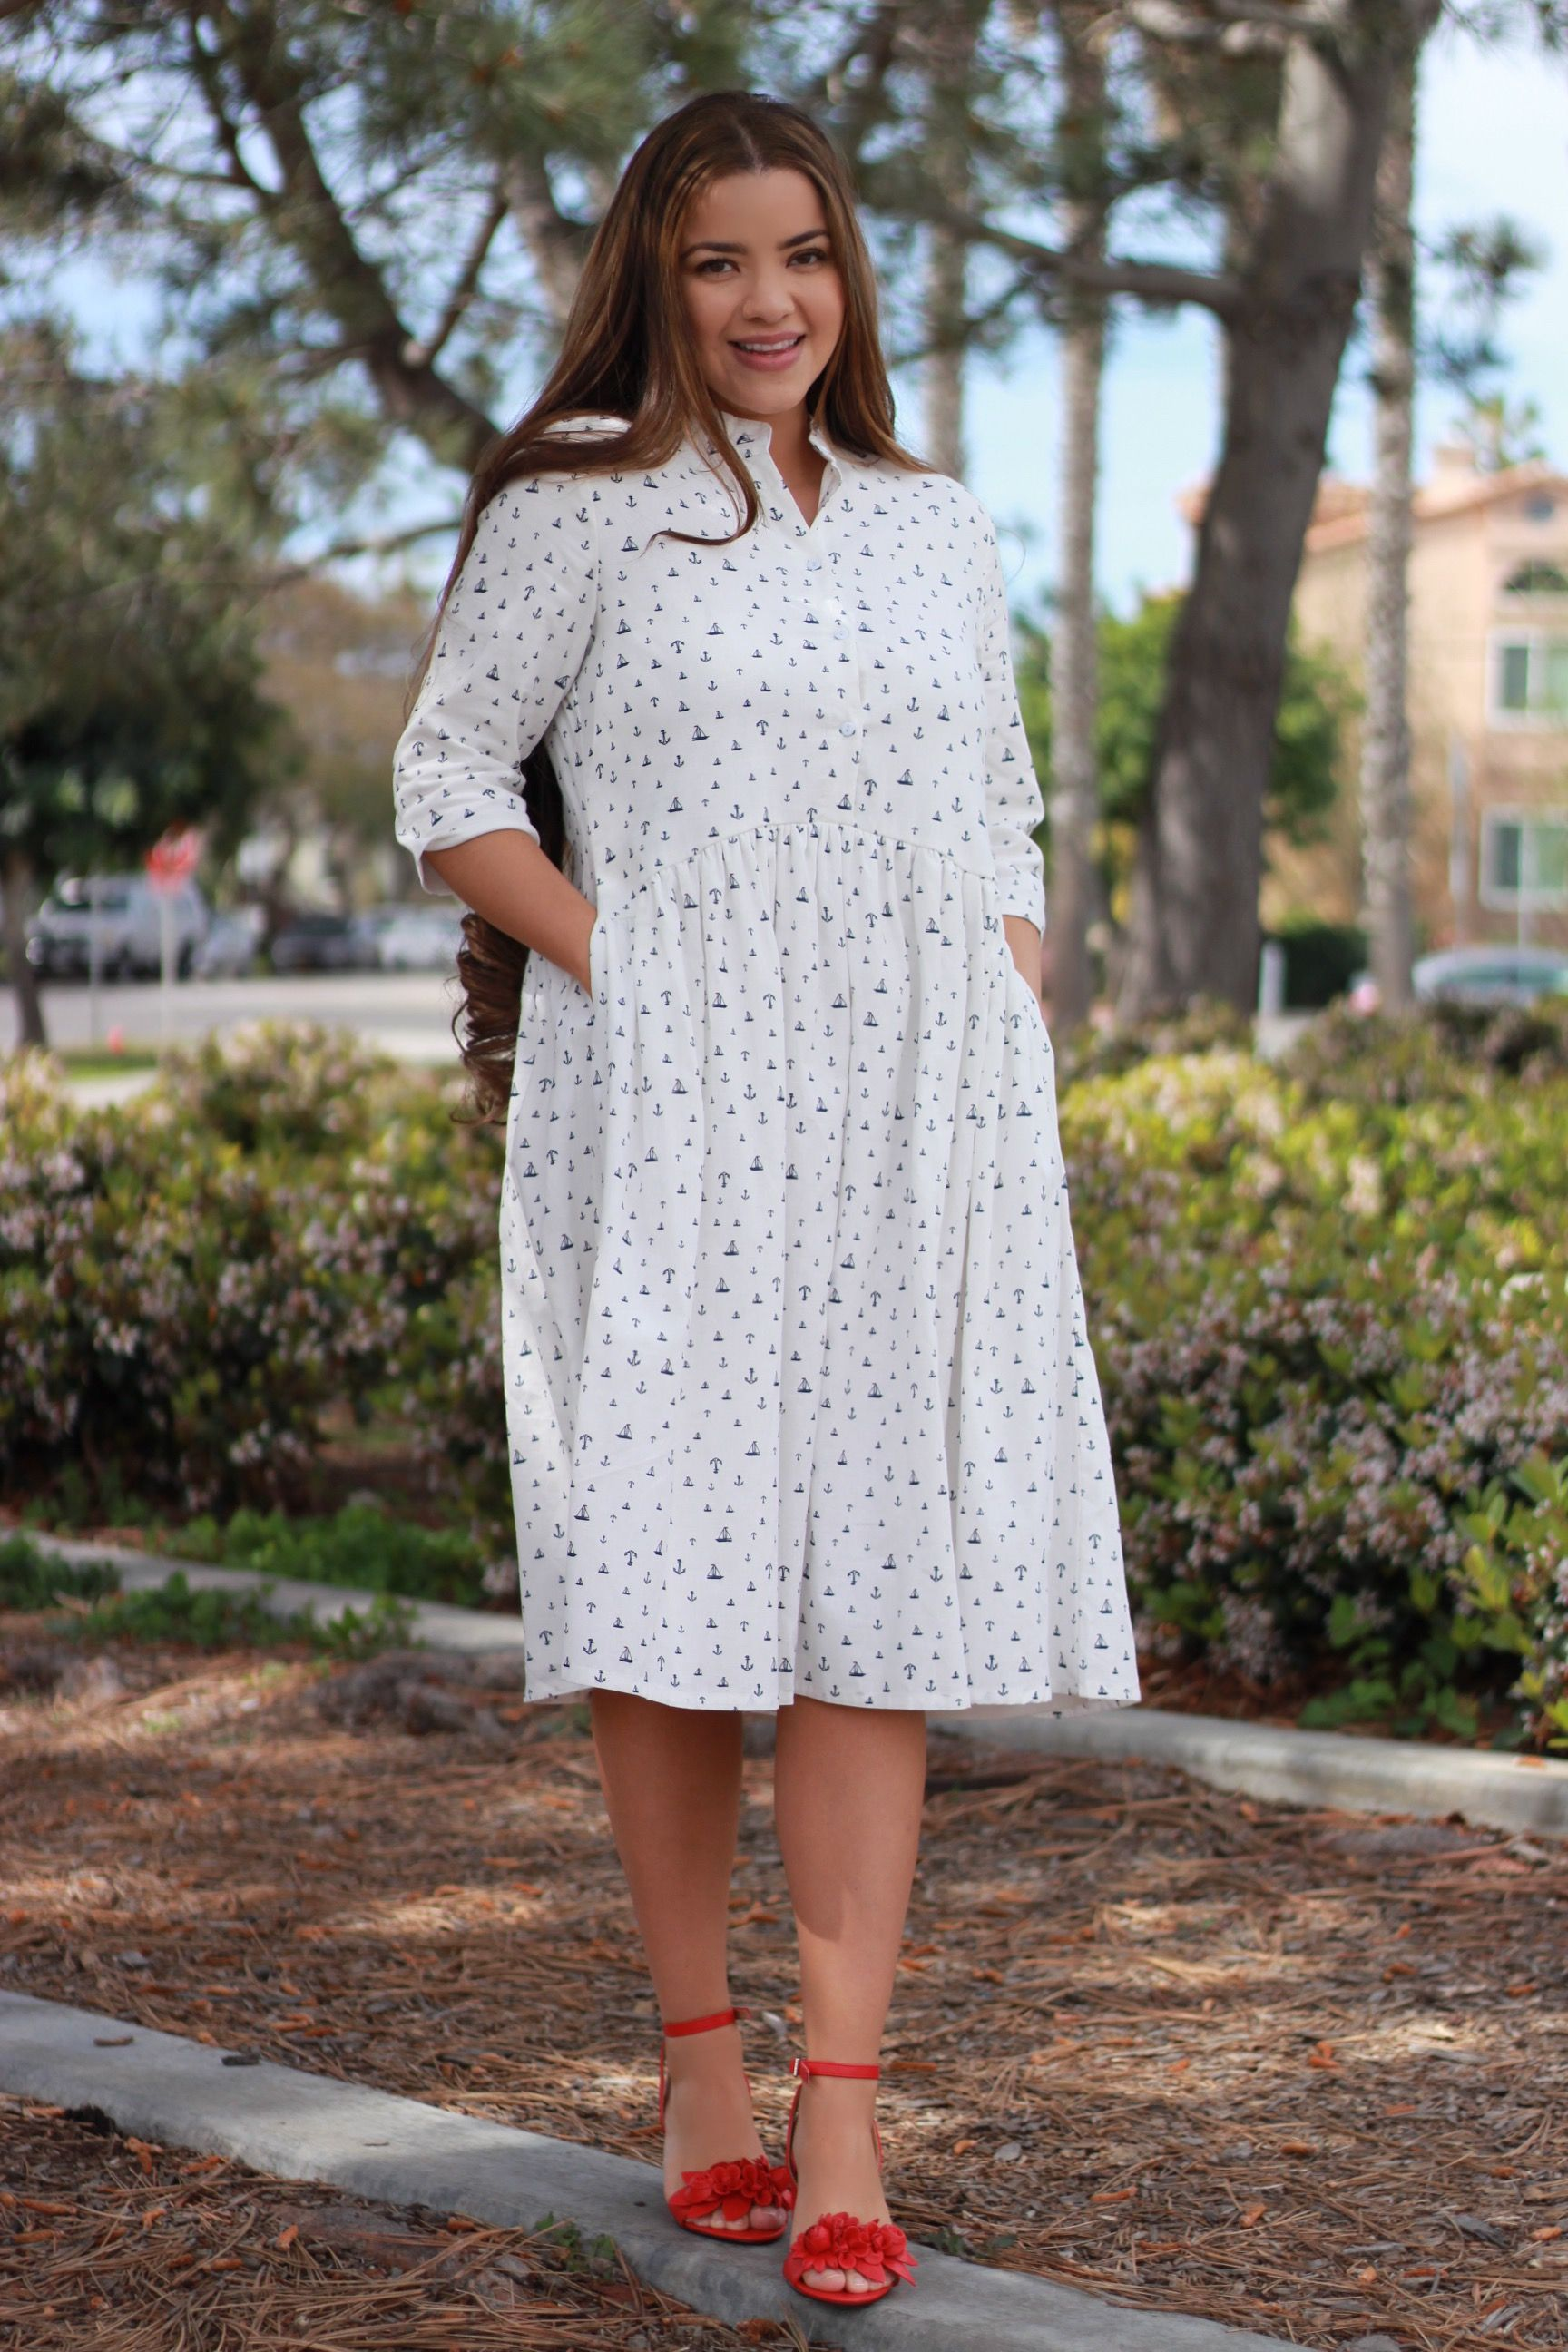 How Perfect Is Our Selah Dress For Spring And Summer Available Now Going Fast Trendy Maxi Dresses Plus Size Fashion For Women Summer Fashion Dresses Casual [ 2592 x 1728 Pixel ]